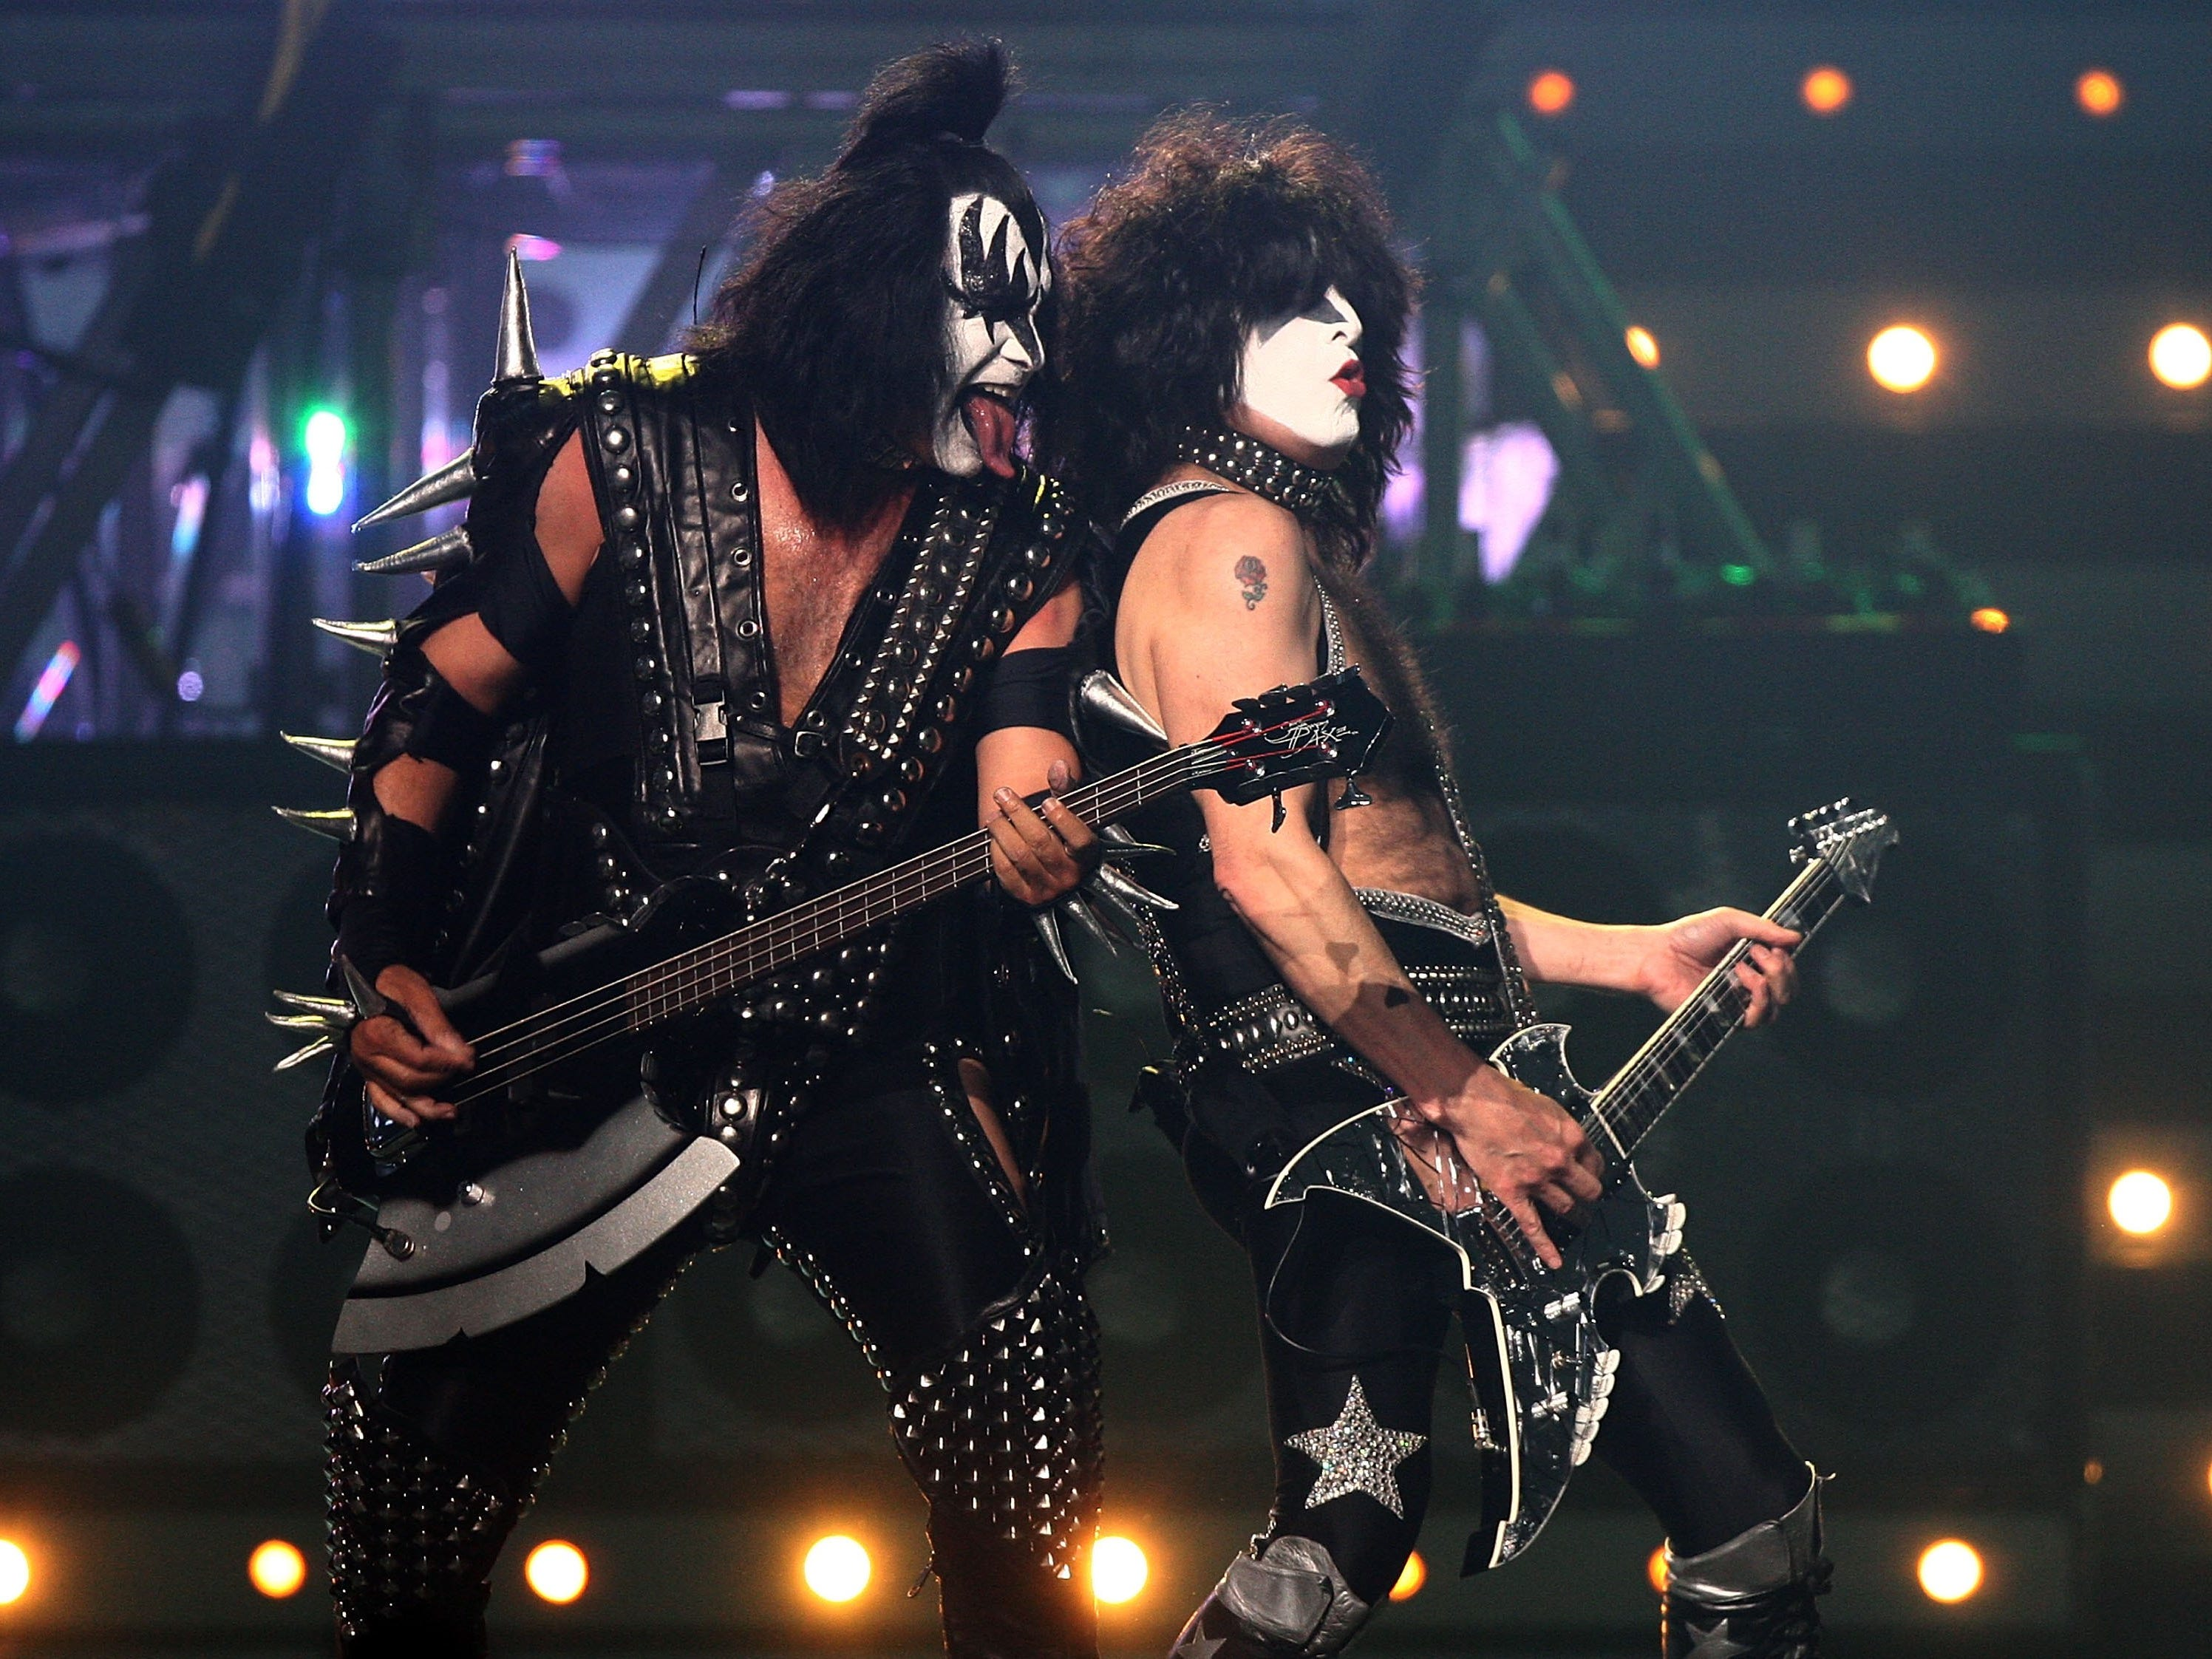 LAS VEGAS - MAY 25:  Musicians Gene Simmons and Paul Stanley of Kiss perform during the VH1 Rock Honors at the Mandalay Bay Events Center on May 25, 2006 in Las Vegas, Nevada.  (Photo by Kevin Winter/Getty Images)